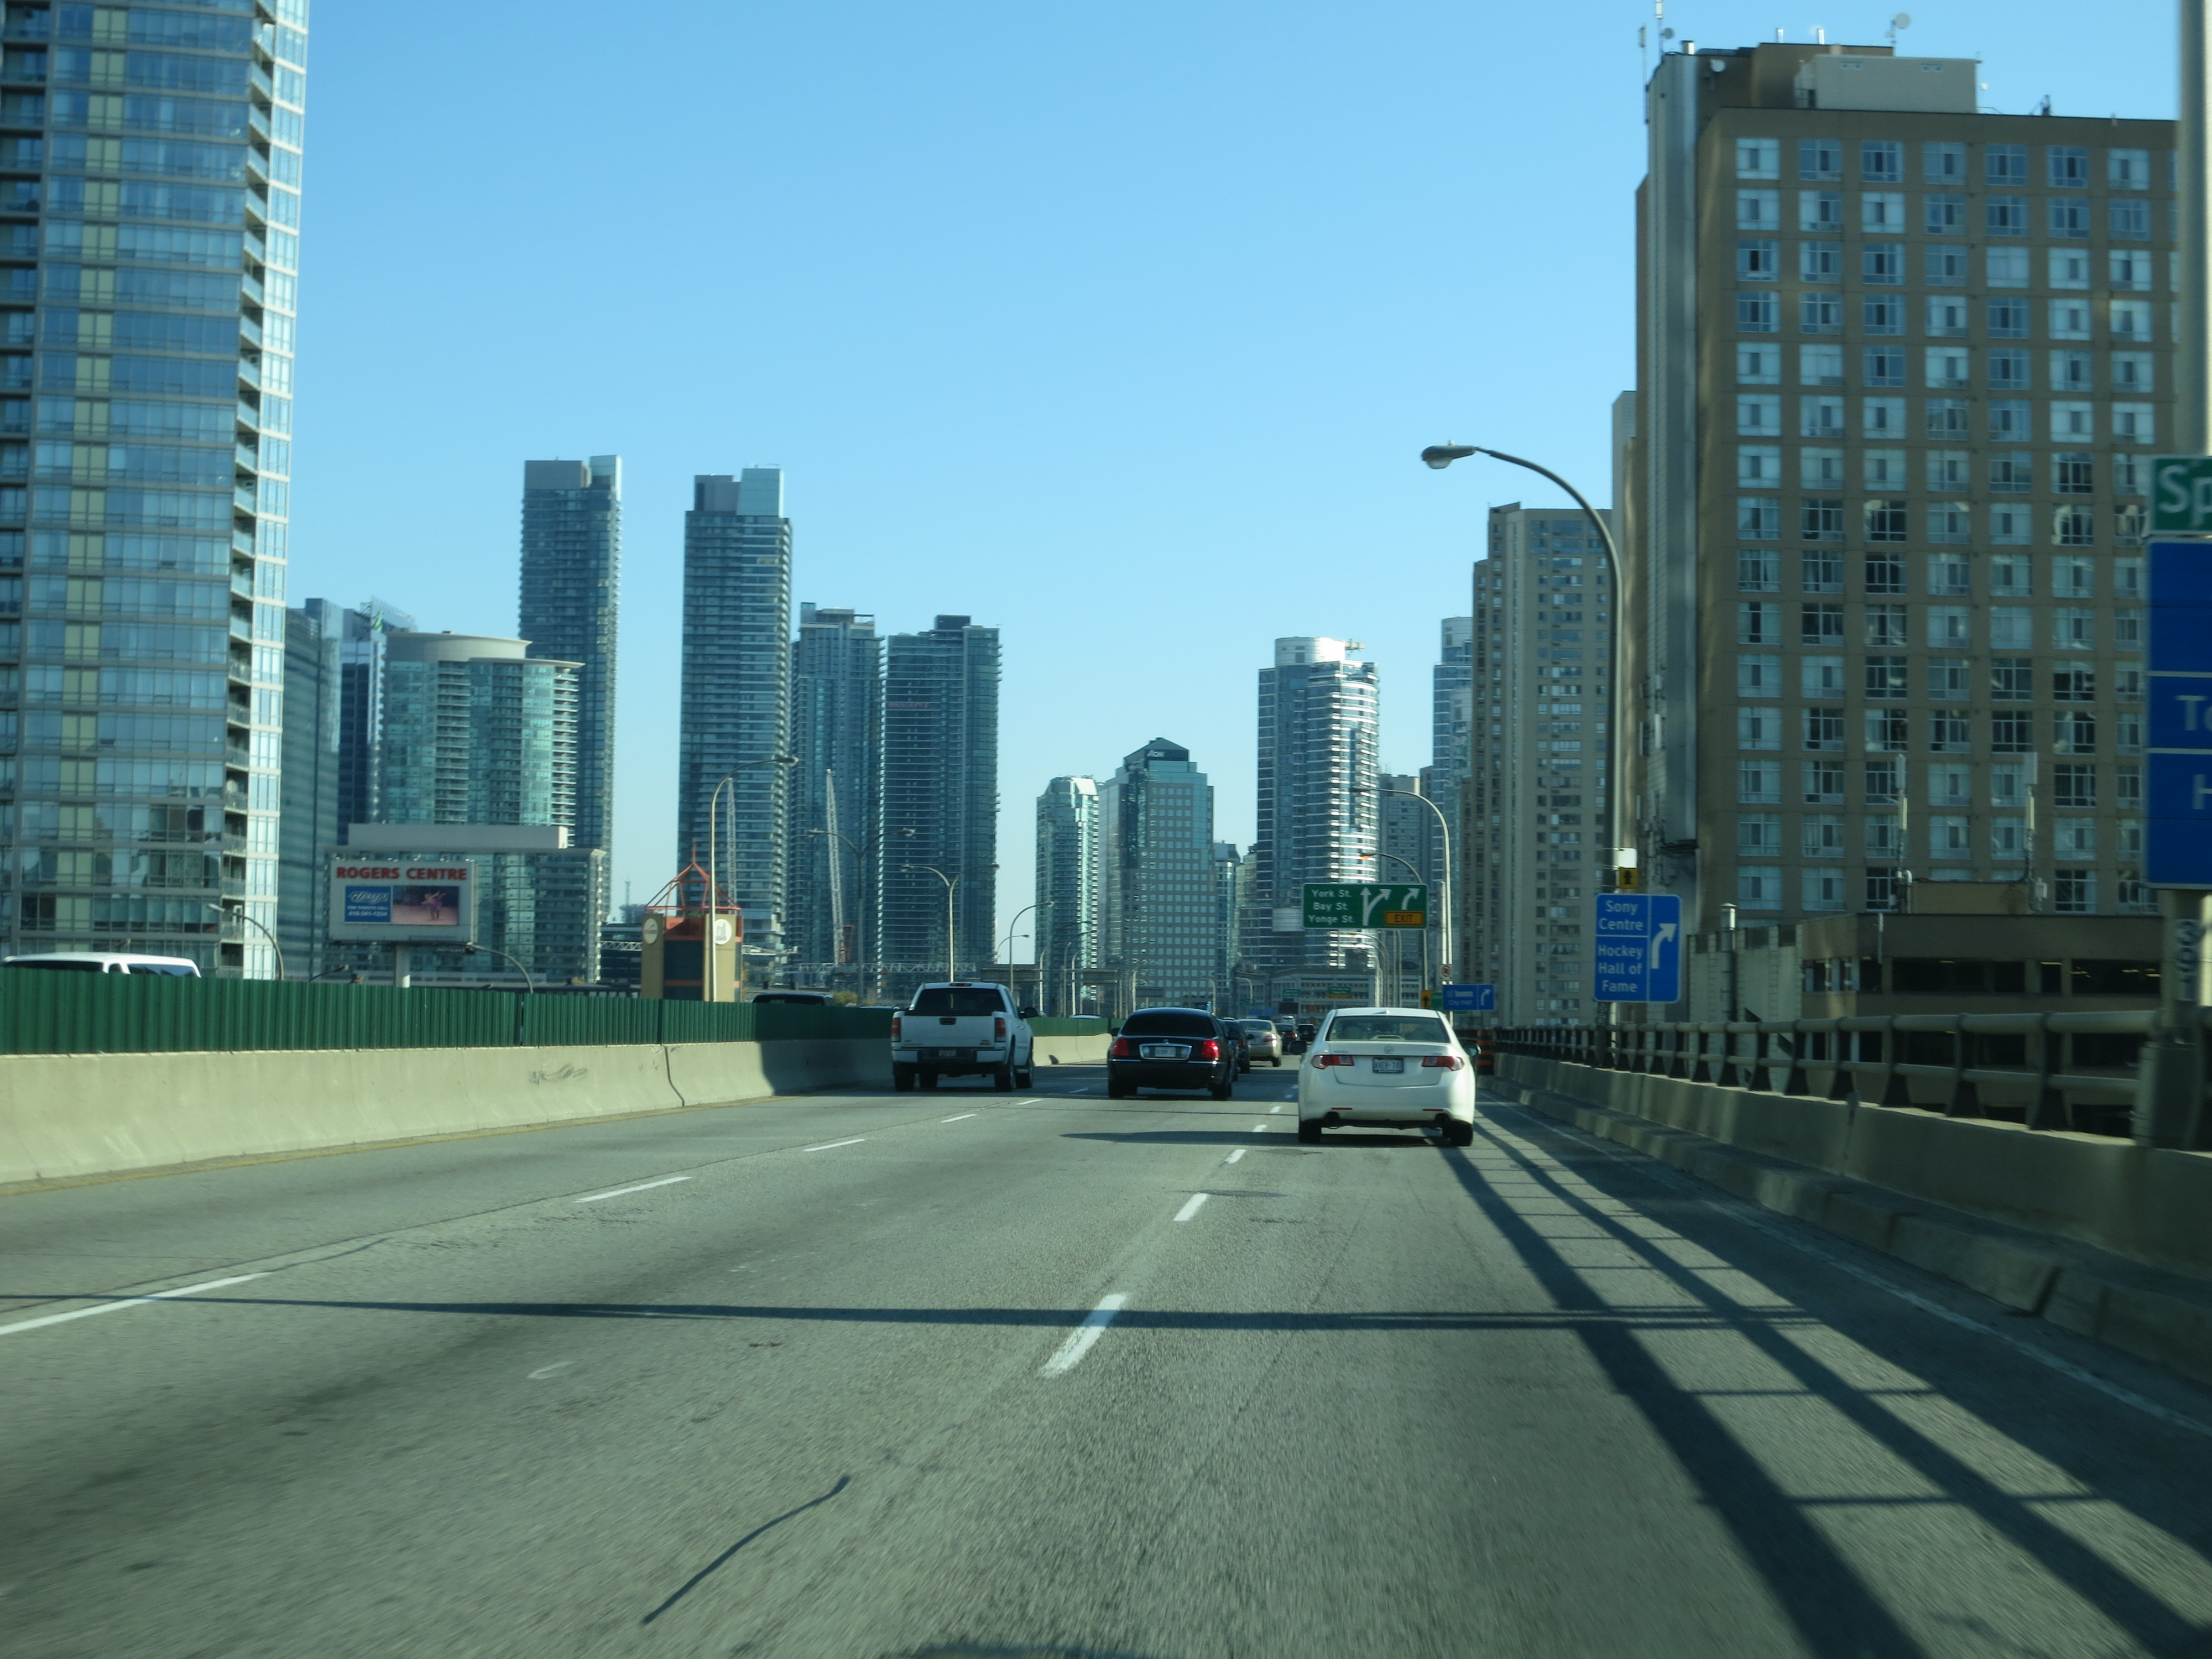 File:In a big city now.jpg - Wikimedia Commons